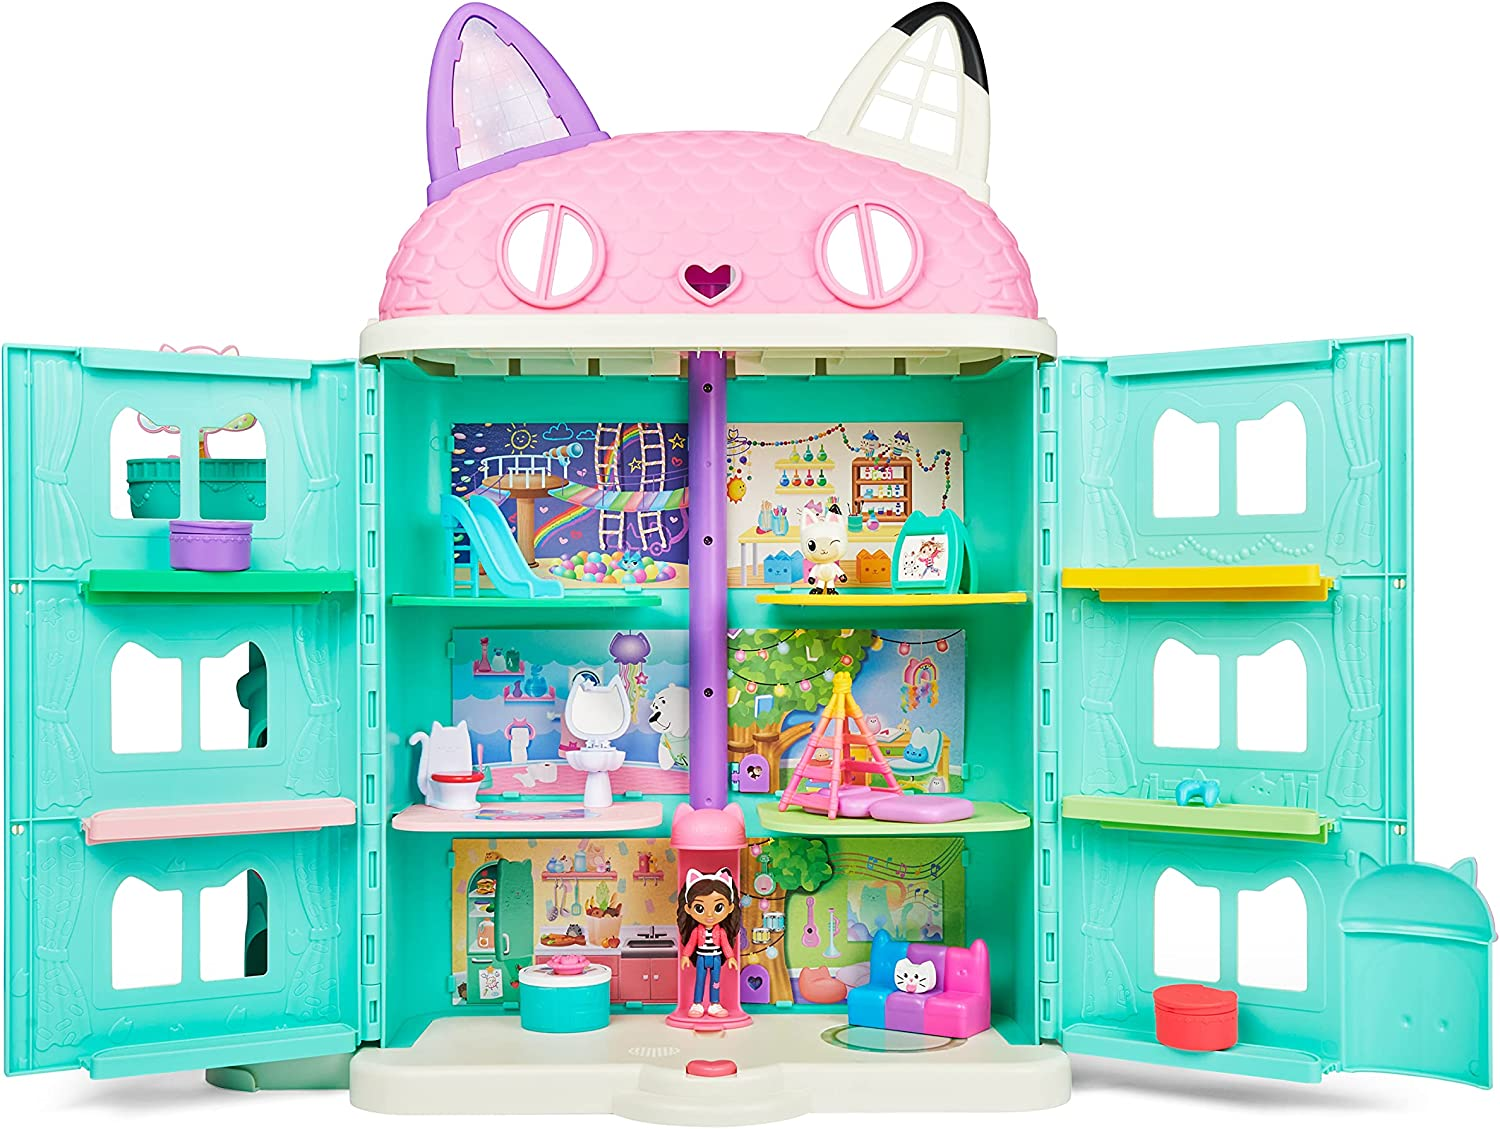 Gabby's Dollhouse Purrfect Dollhouse - Full view with contents